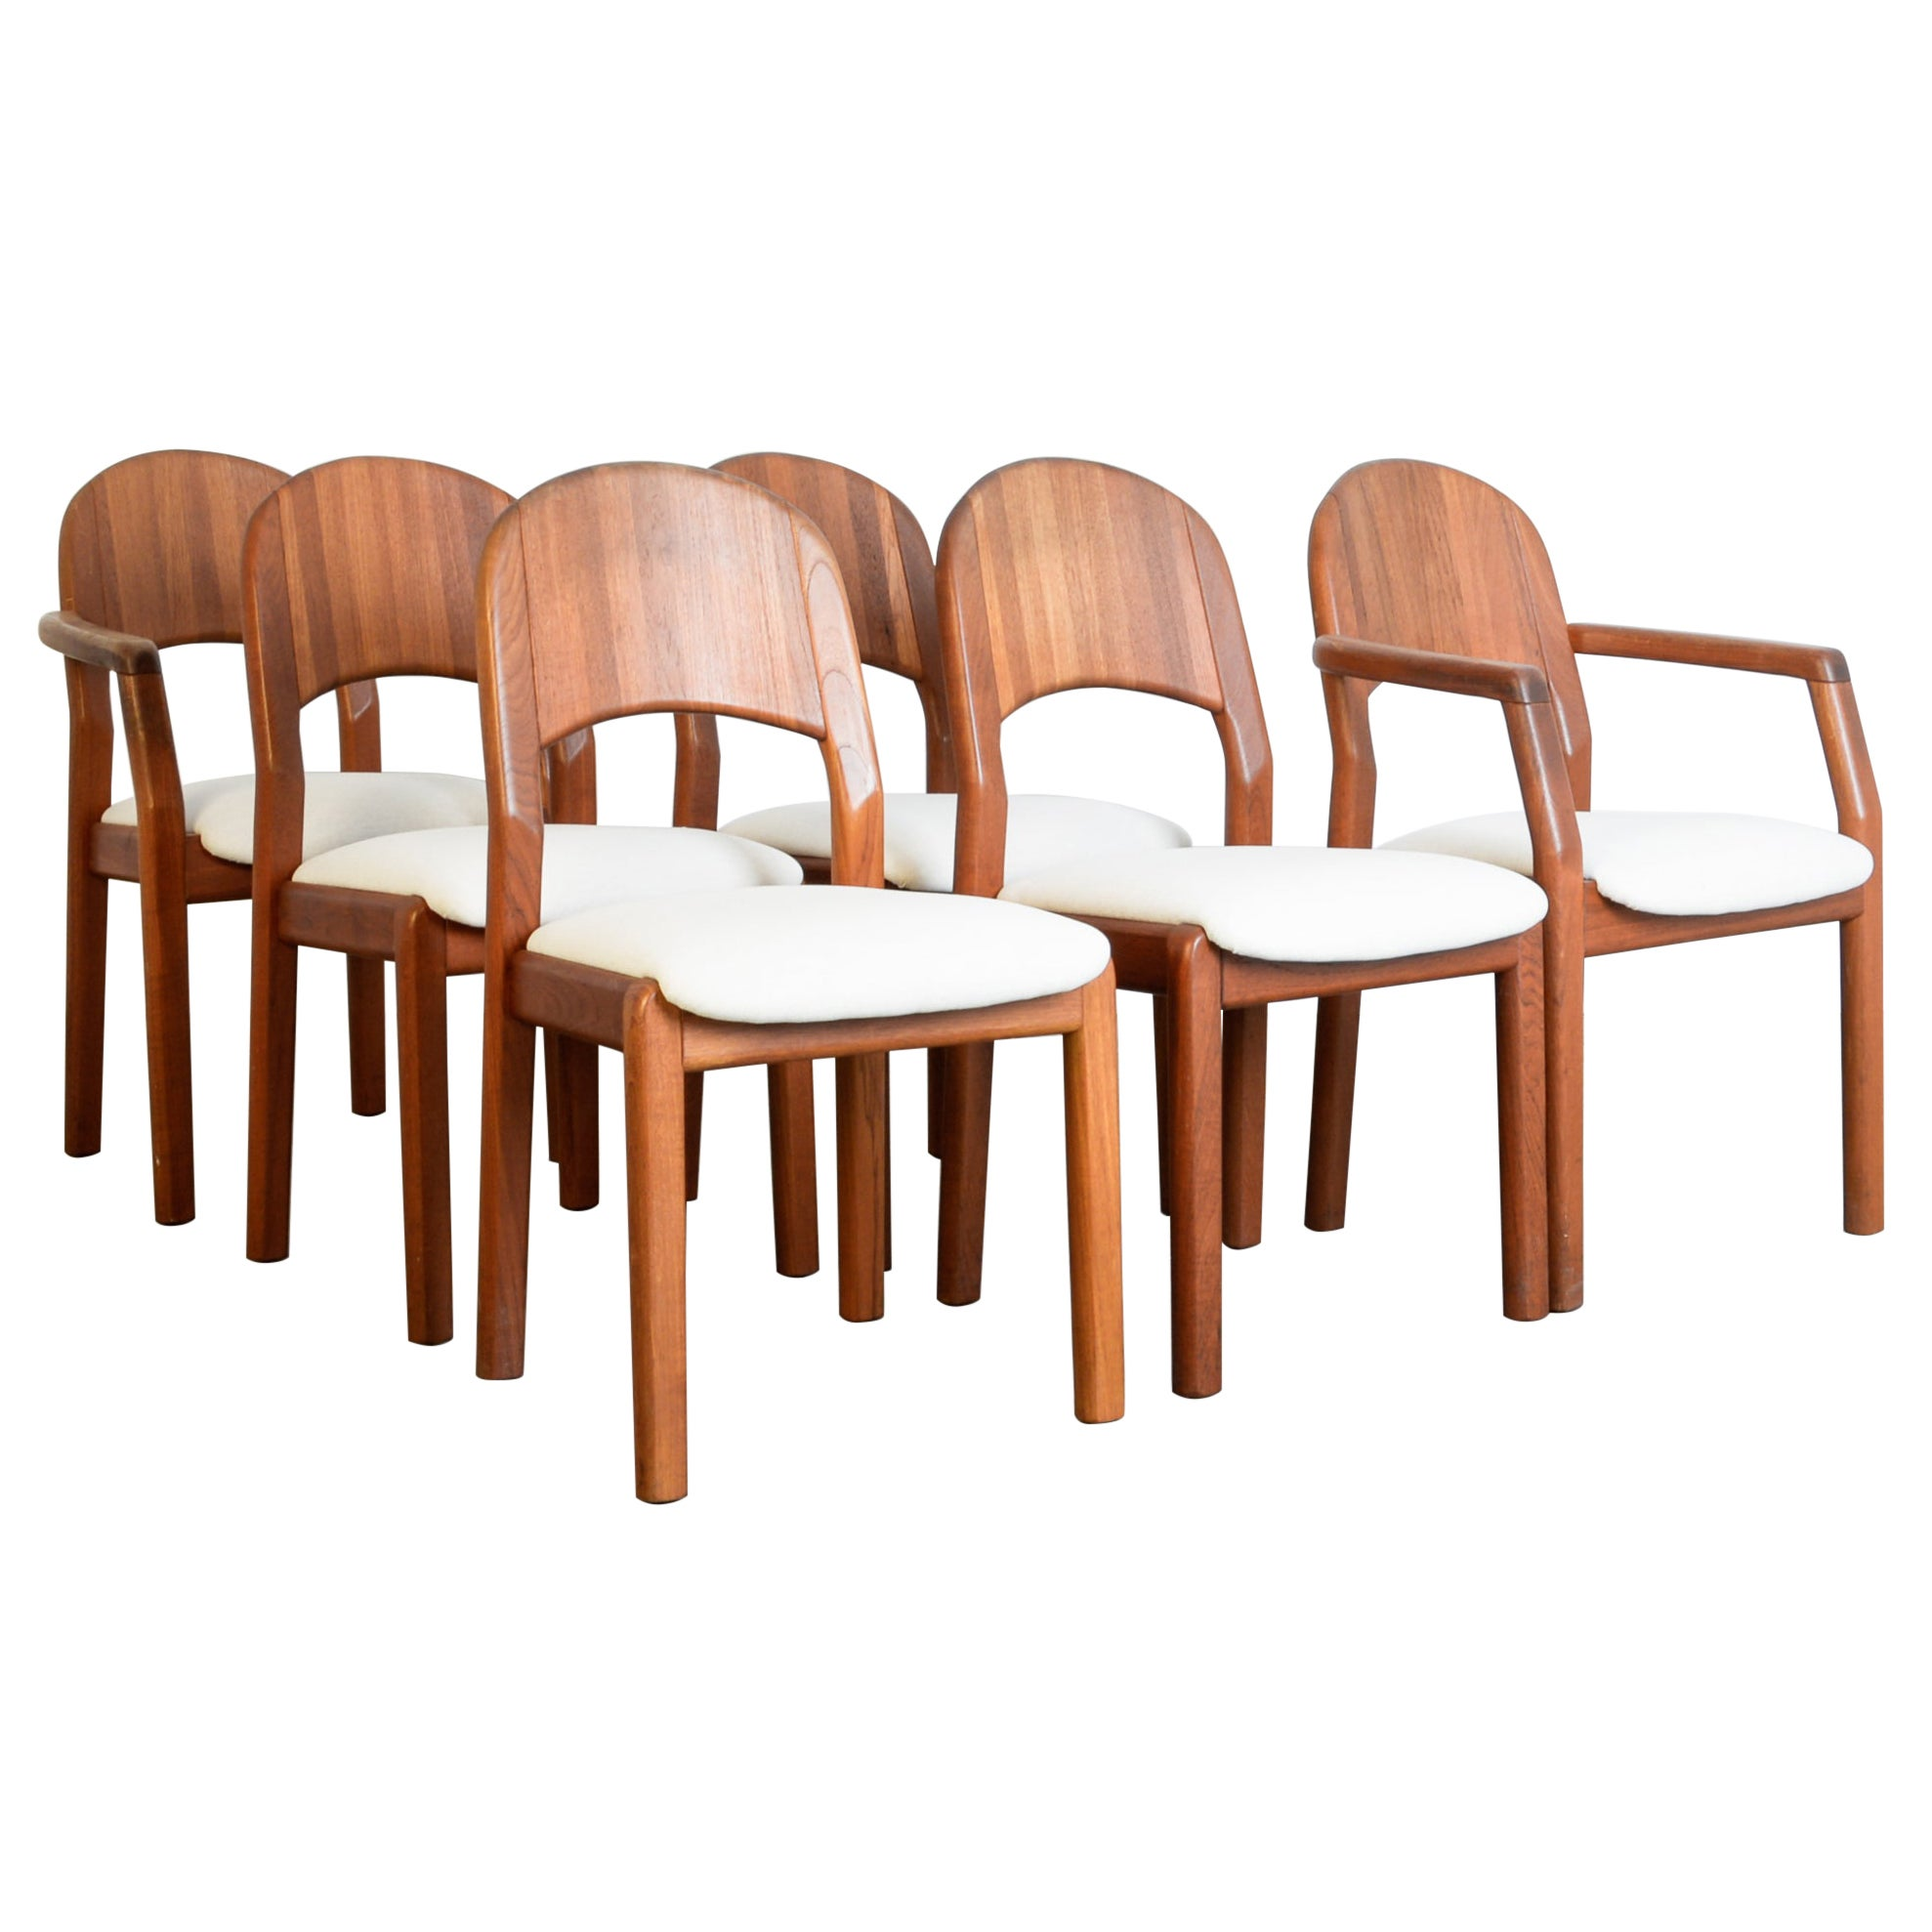 1970s Danish Teak Upholstered Dining Chairs, Set of Six